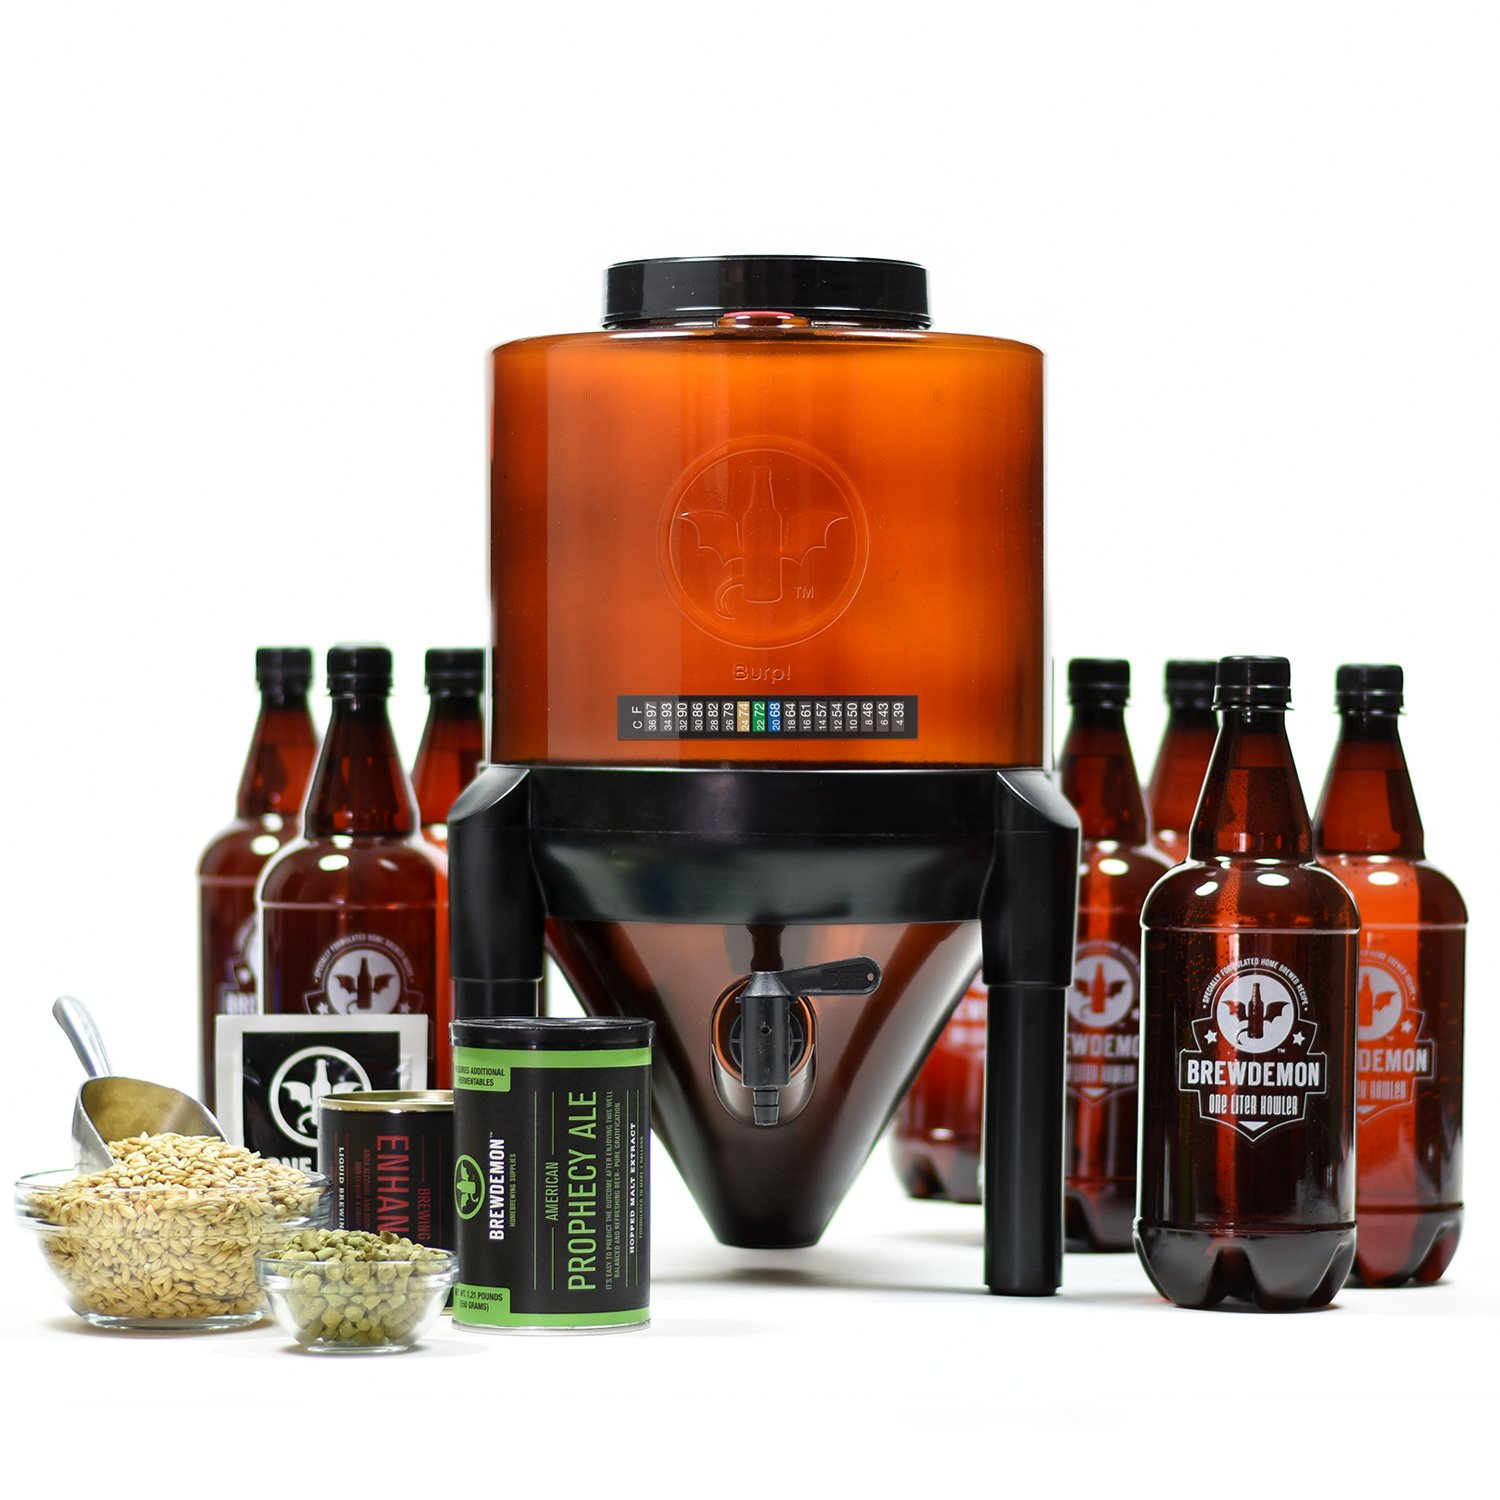 BrewDemon Craft Beer Kit Demon Brewing COMINHKPR49996